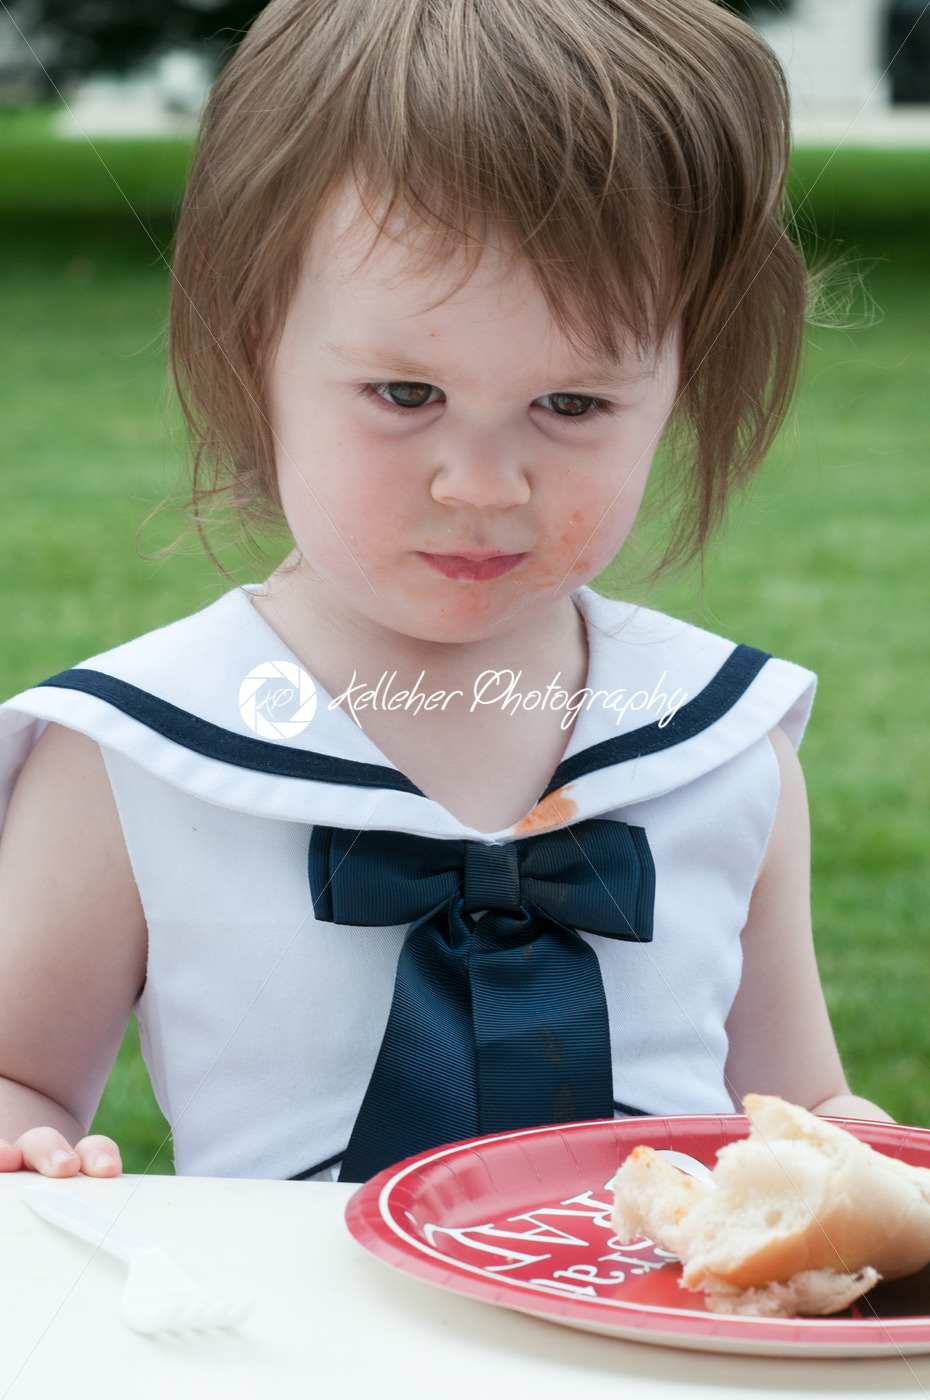 Young girl in fancy dress outside eating - Kelleher Photography Store